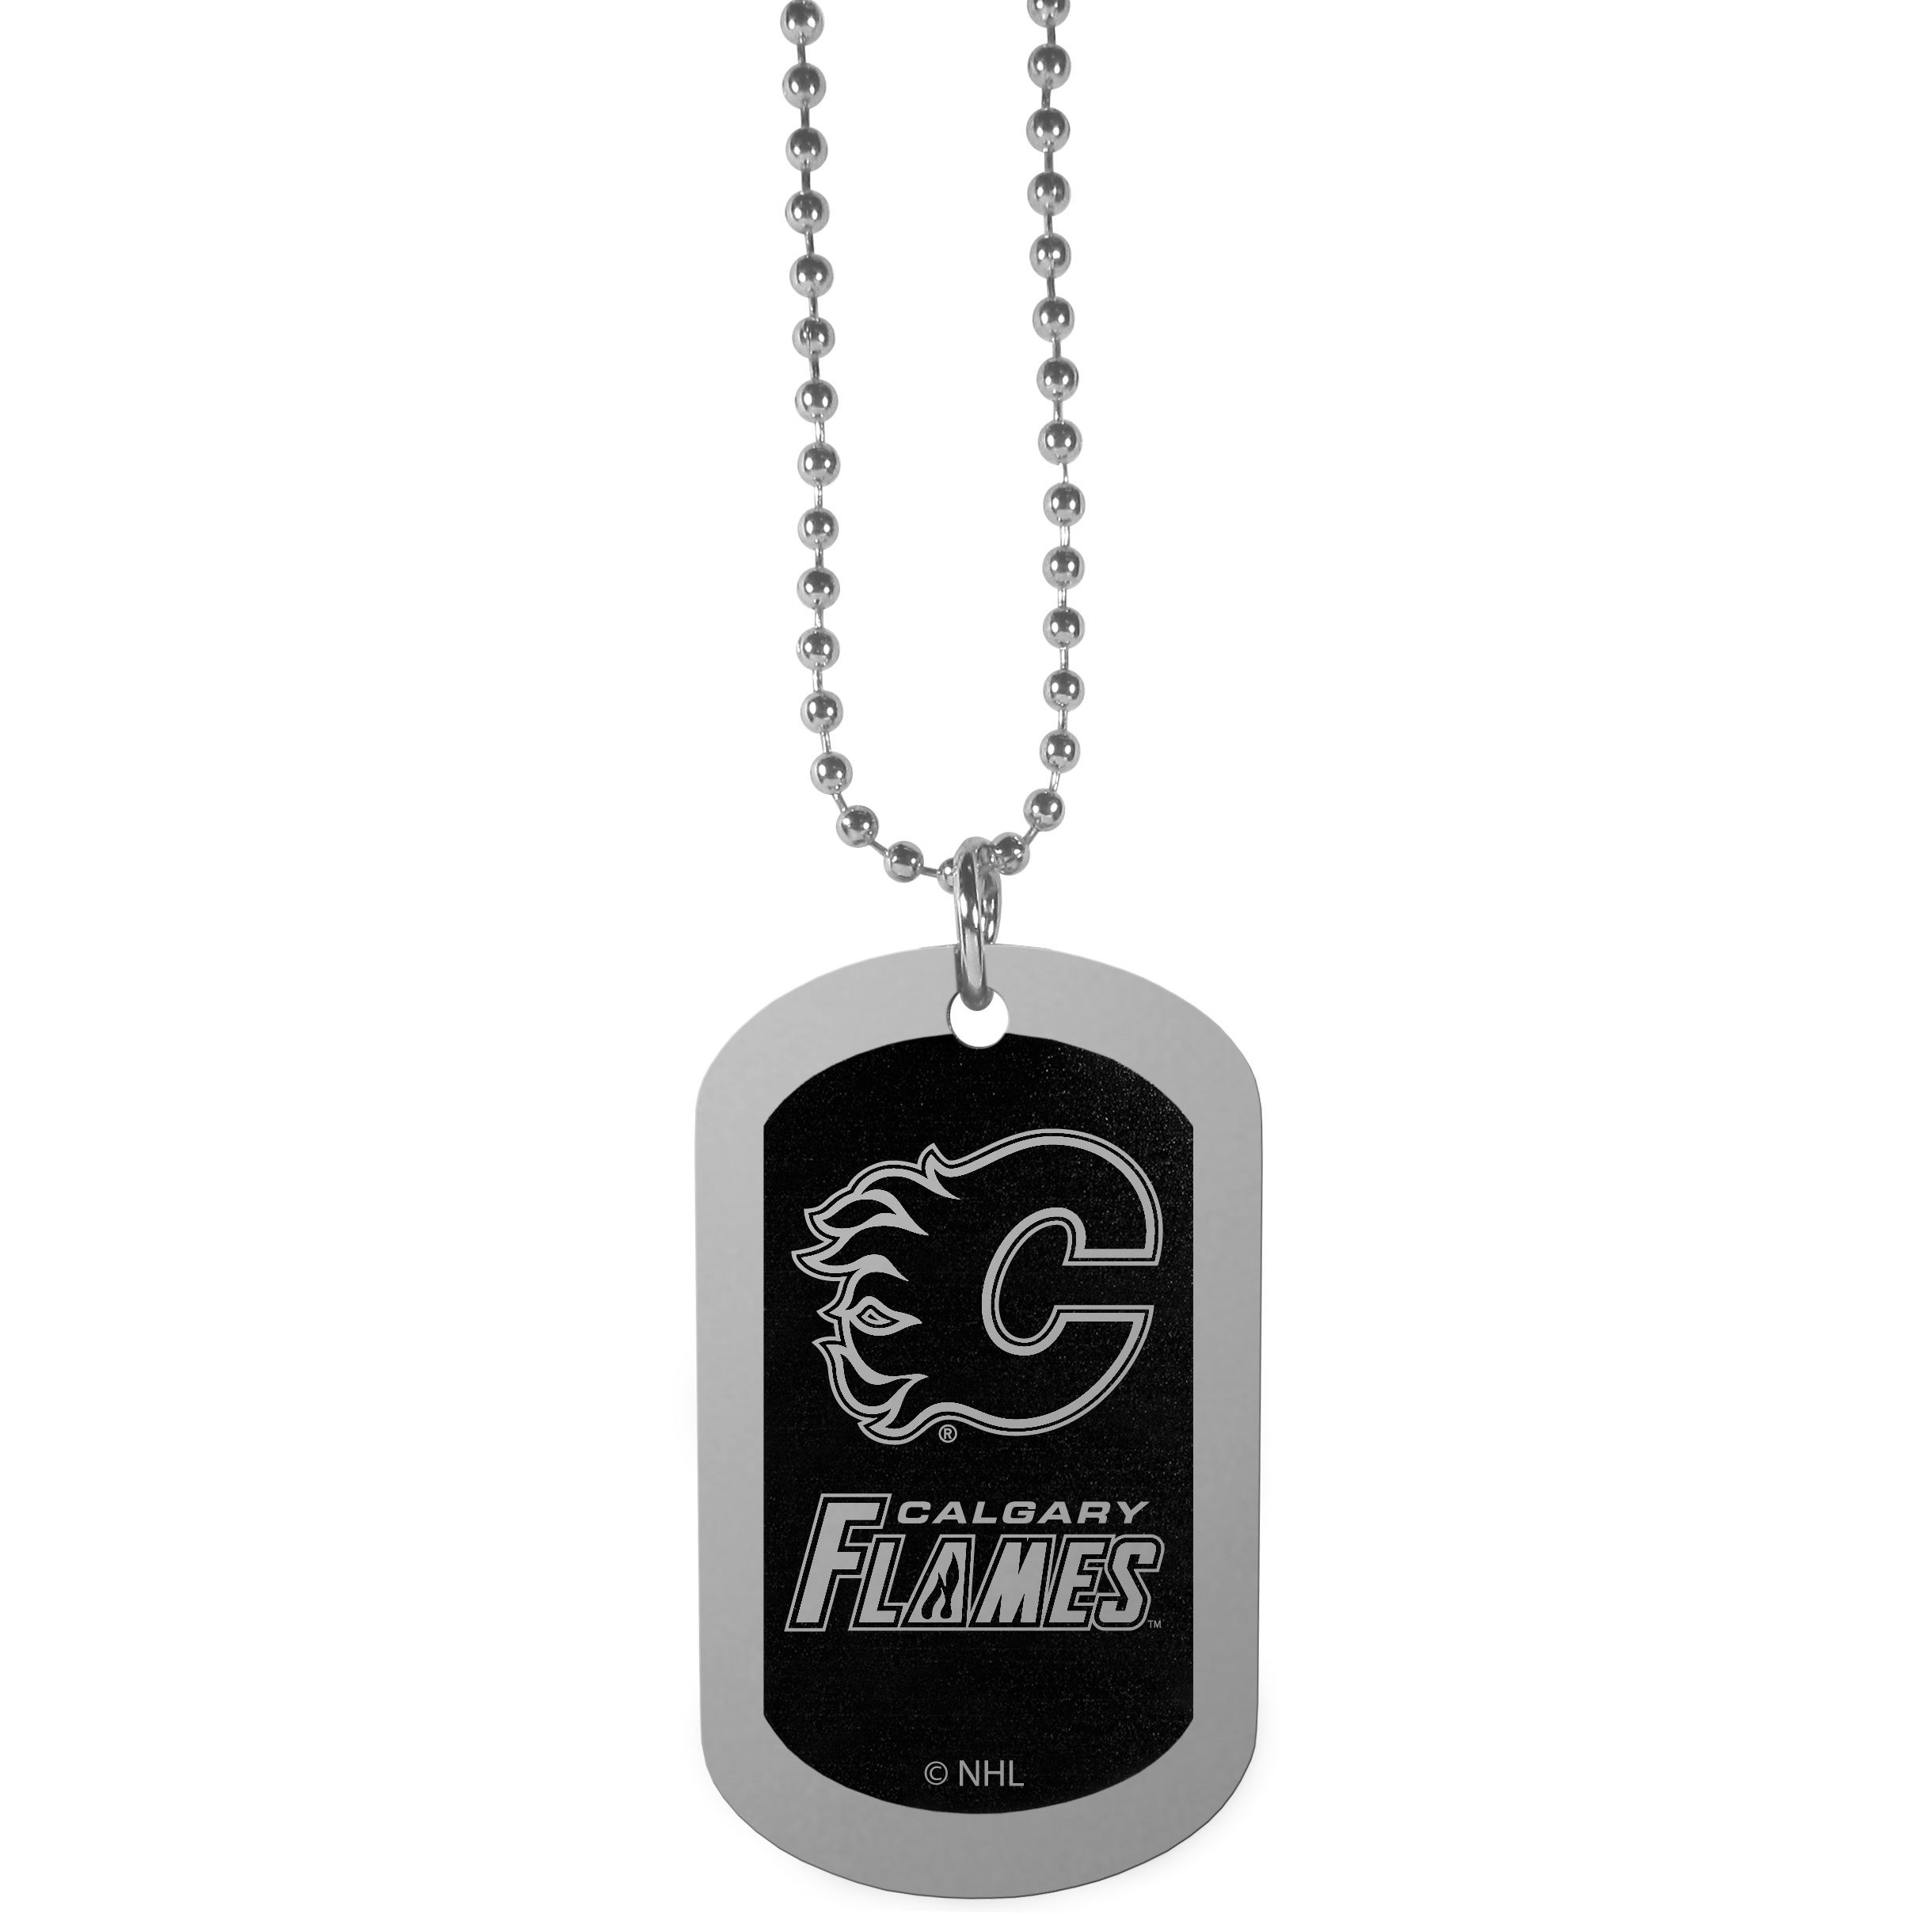 Calgary Flames® Chrome Tag Necklace - Dog tag necklaces are a fashion statement that is here to stay. The sporty version of the classic tag features a black printed over a high polish tag to create a bold and sporty look. The tag comes on a 26 inch ball chain with a ball and joint clasp. Any Calgary Flames® would be proud to wear this attractive fashion accessory.